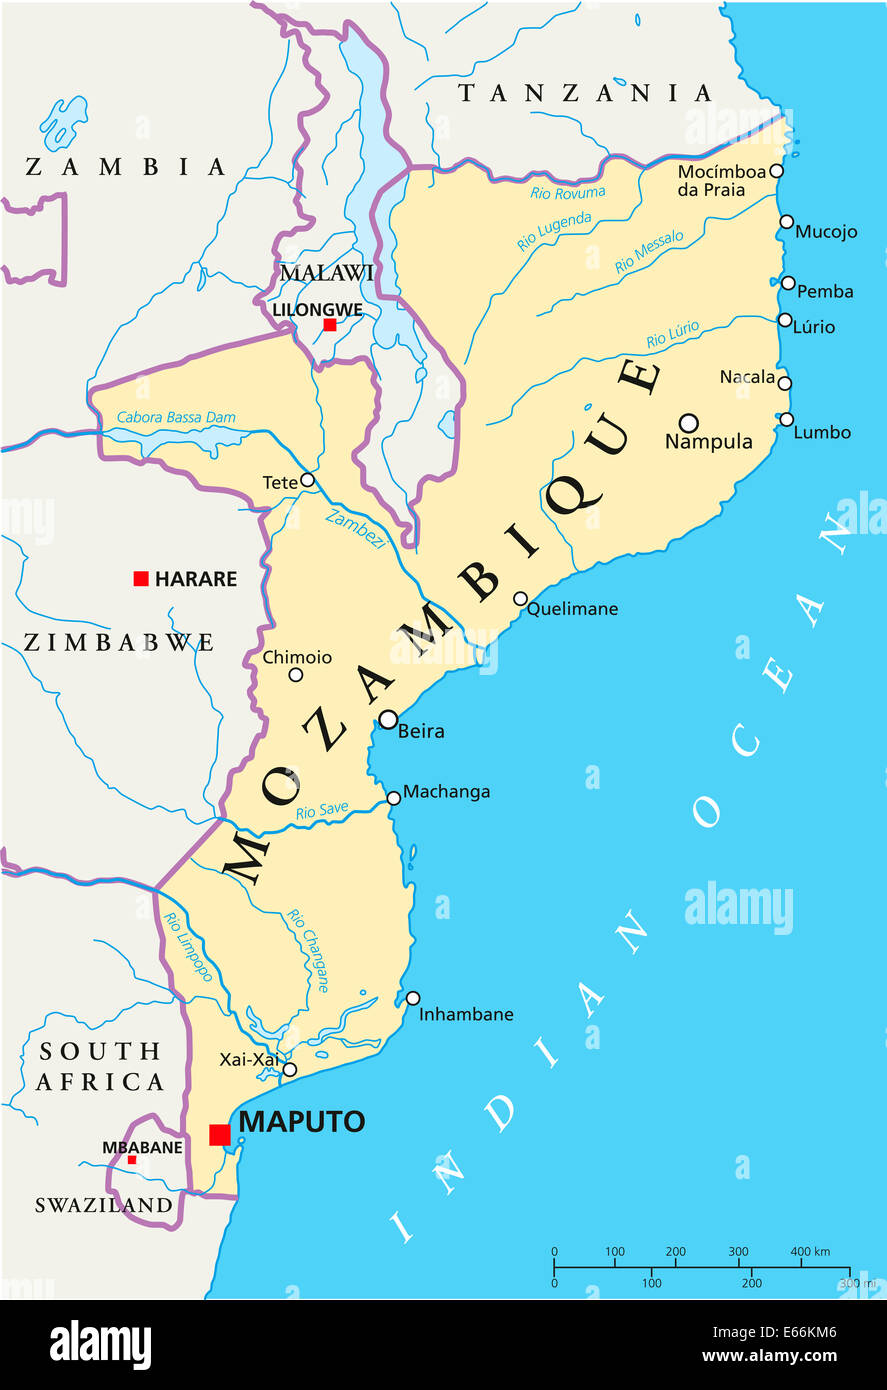 maputo mozambique africa map